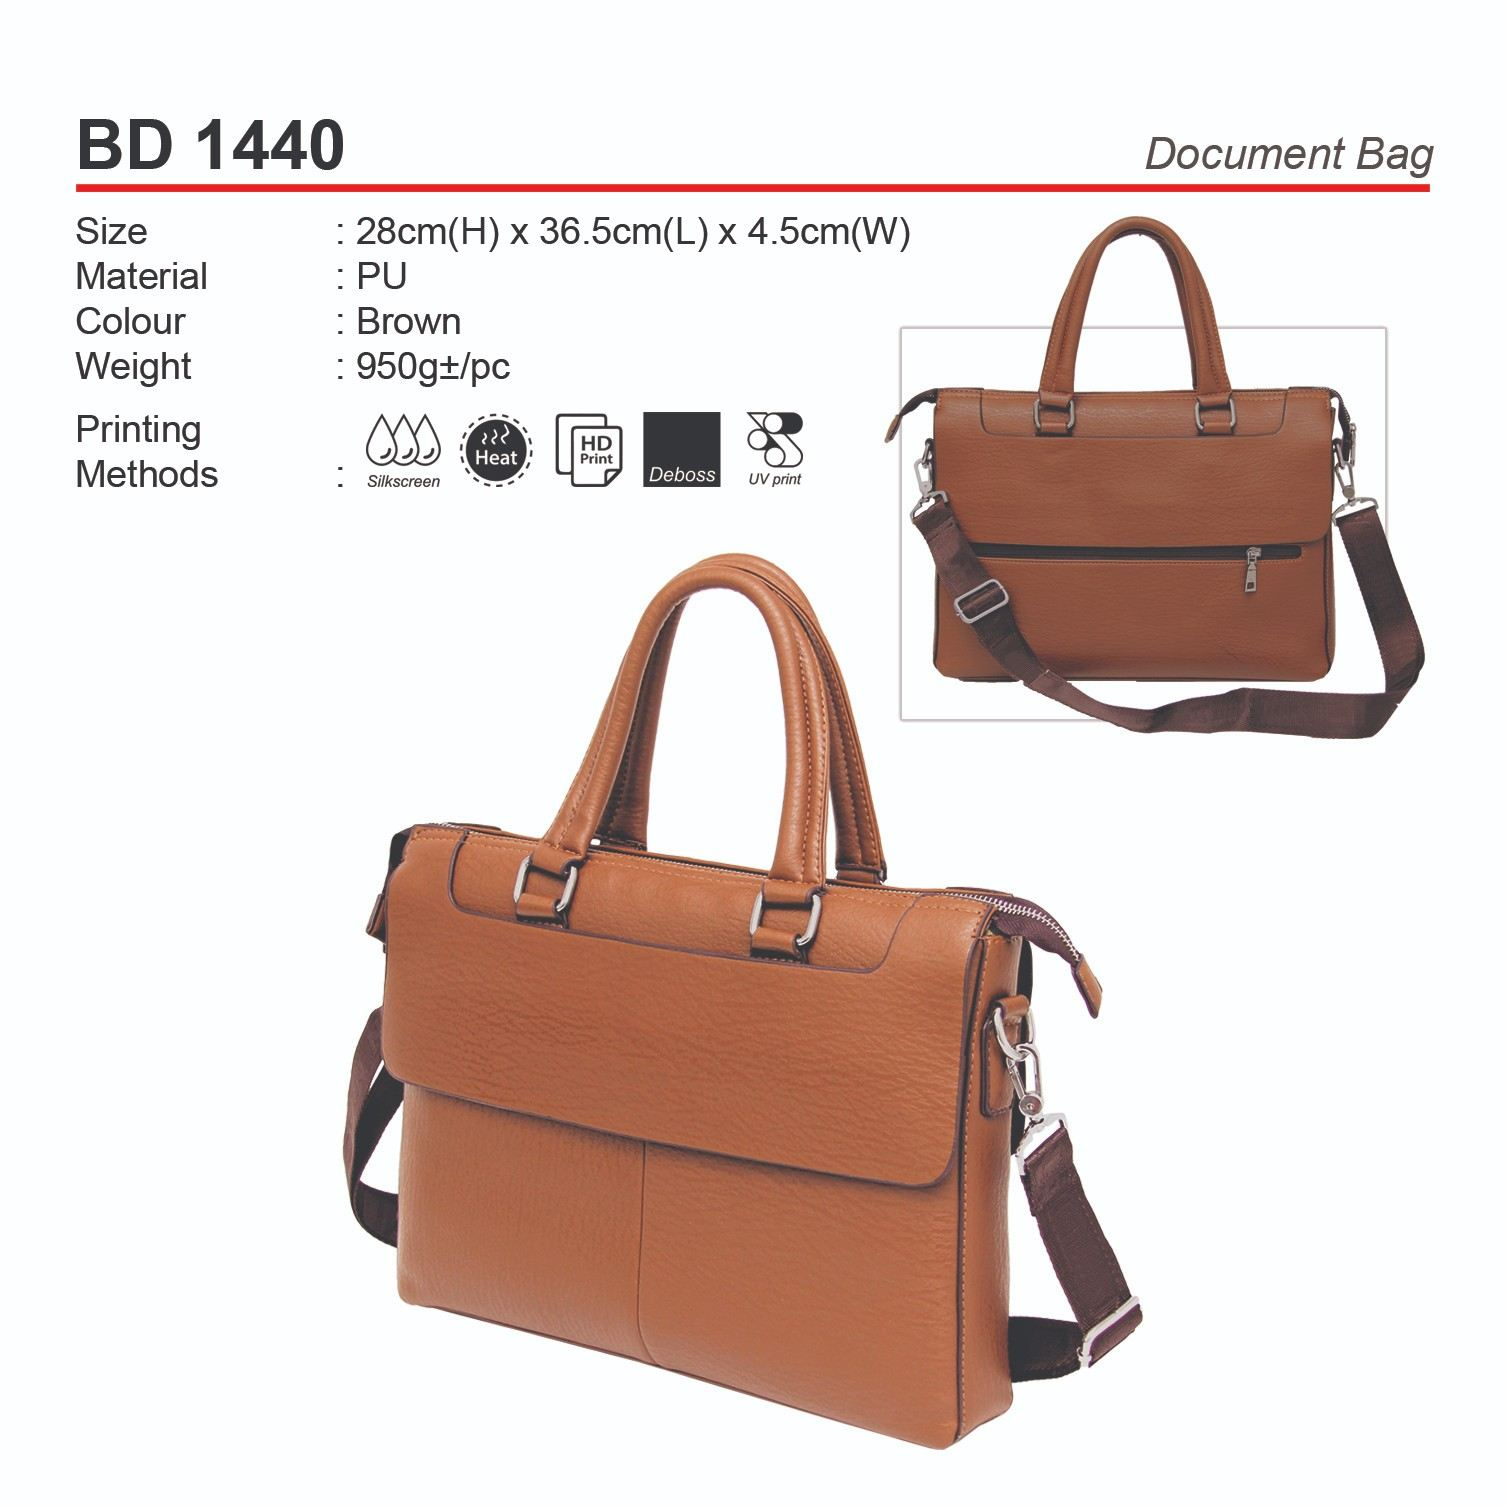 BD1440 Document Bag